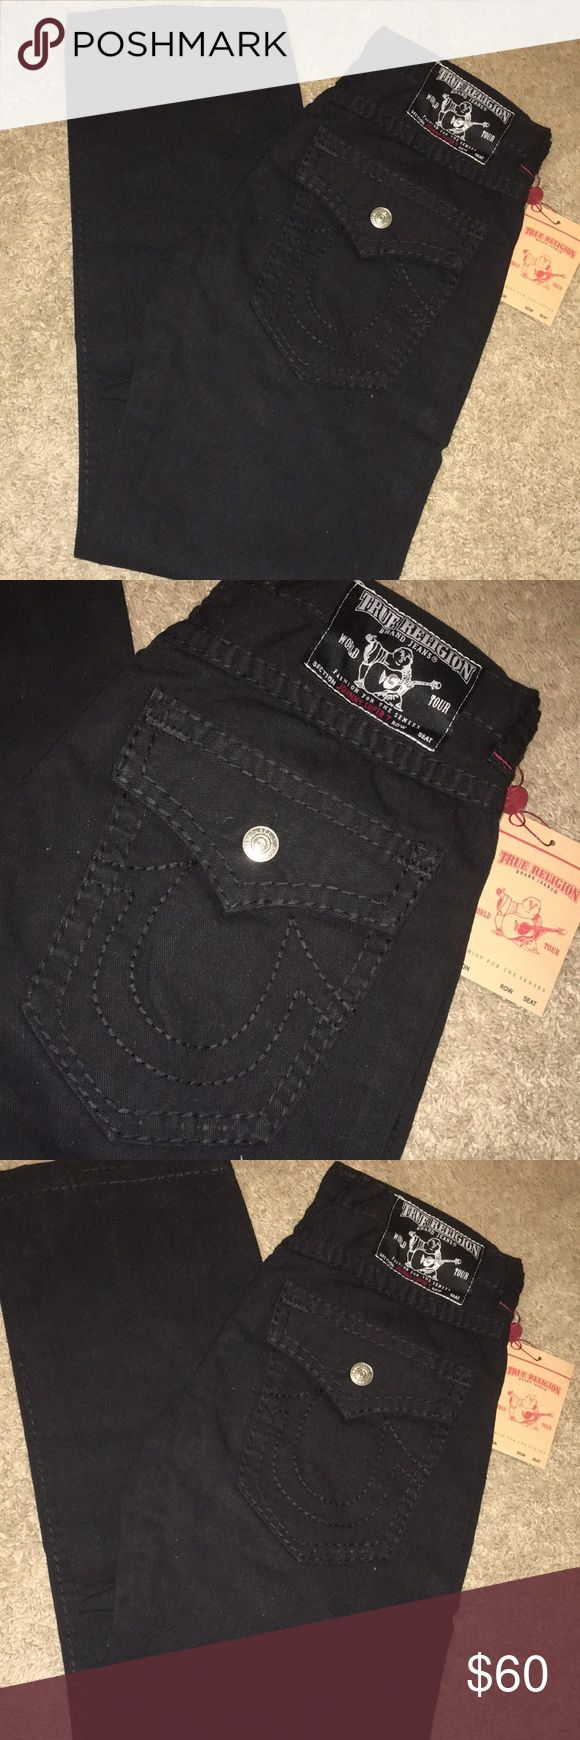 True Religion Men Jeans Brand new with tags ... Open to offers! True Religion Jeans Bootcut #mensjeansbrands